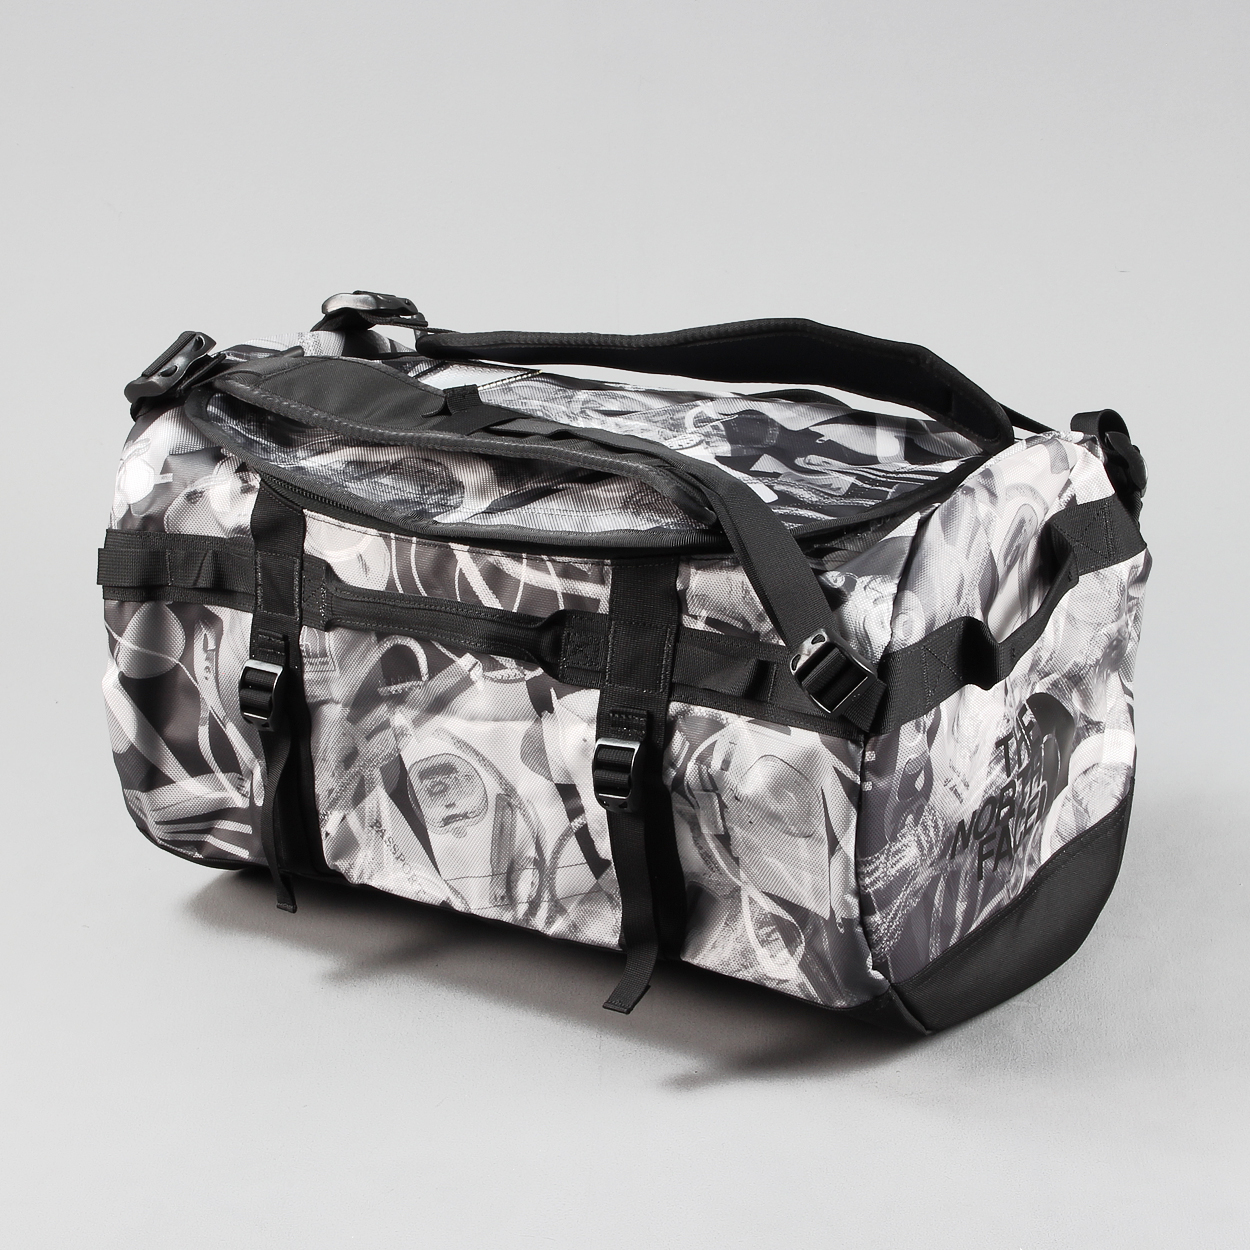 699581772 The North Face Luggage Base Camp Duffel Small 50L Bag Black X Ray £66.50